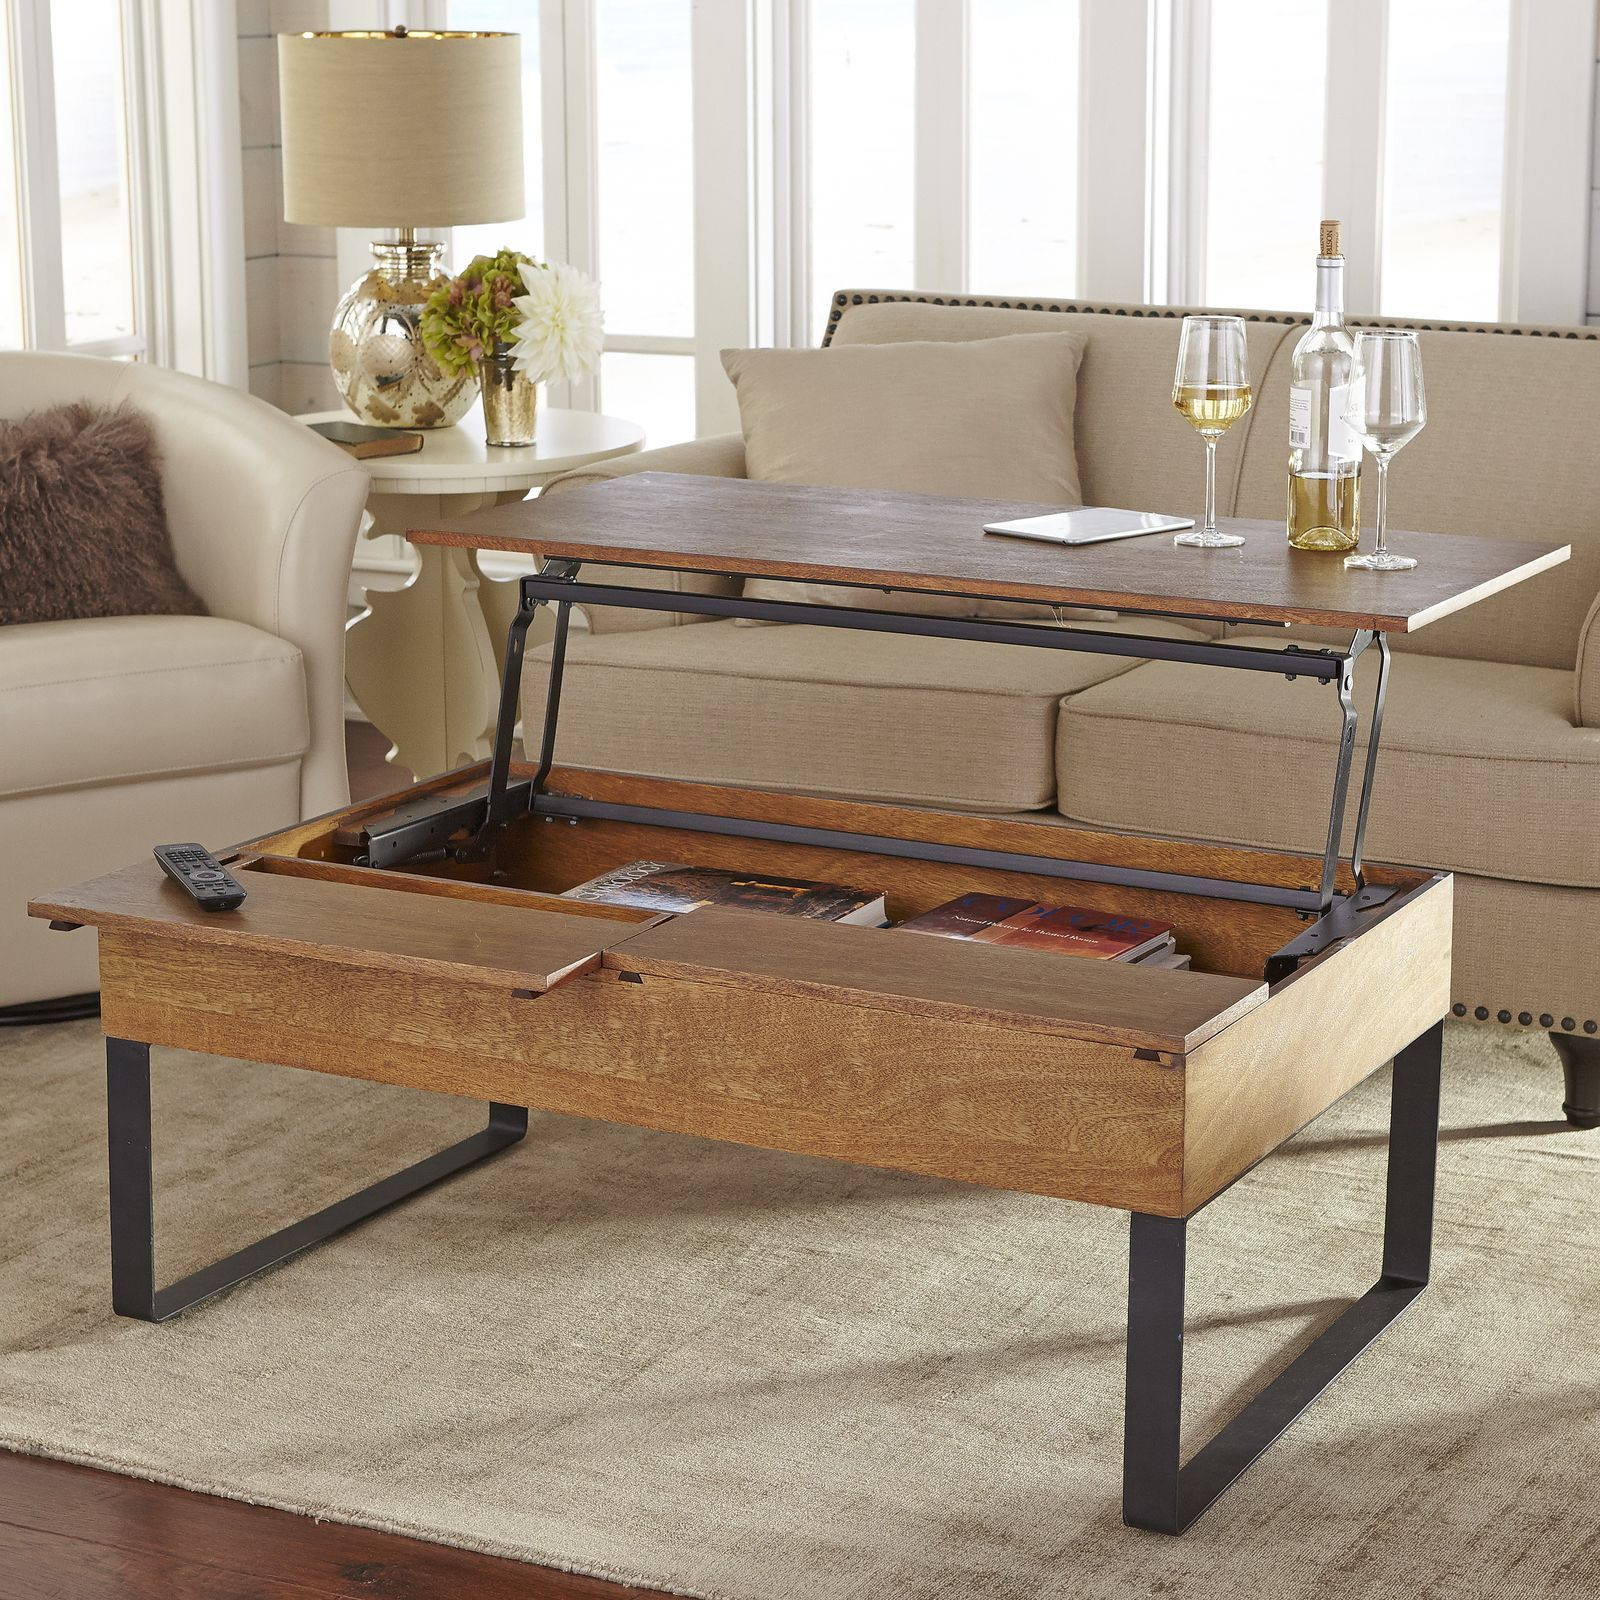 Center Tables With Storage Hugh Java Lift Top Coffee Table Decorating Lift Top